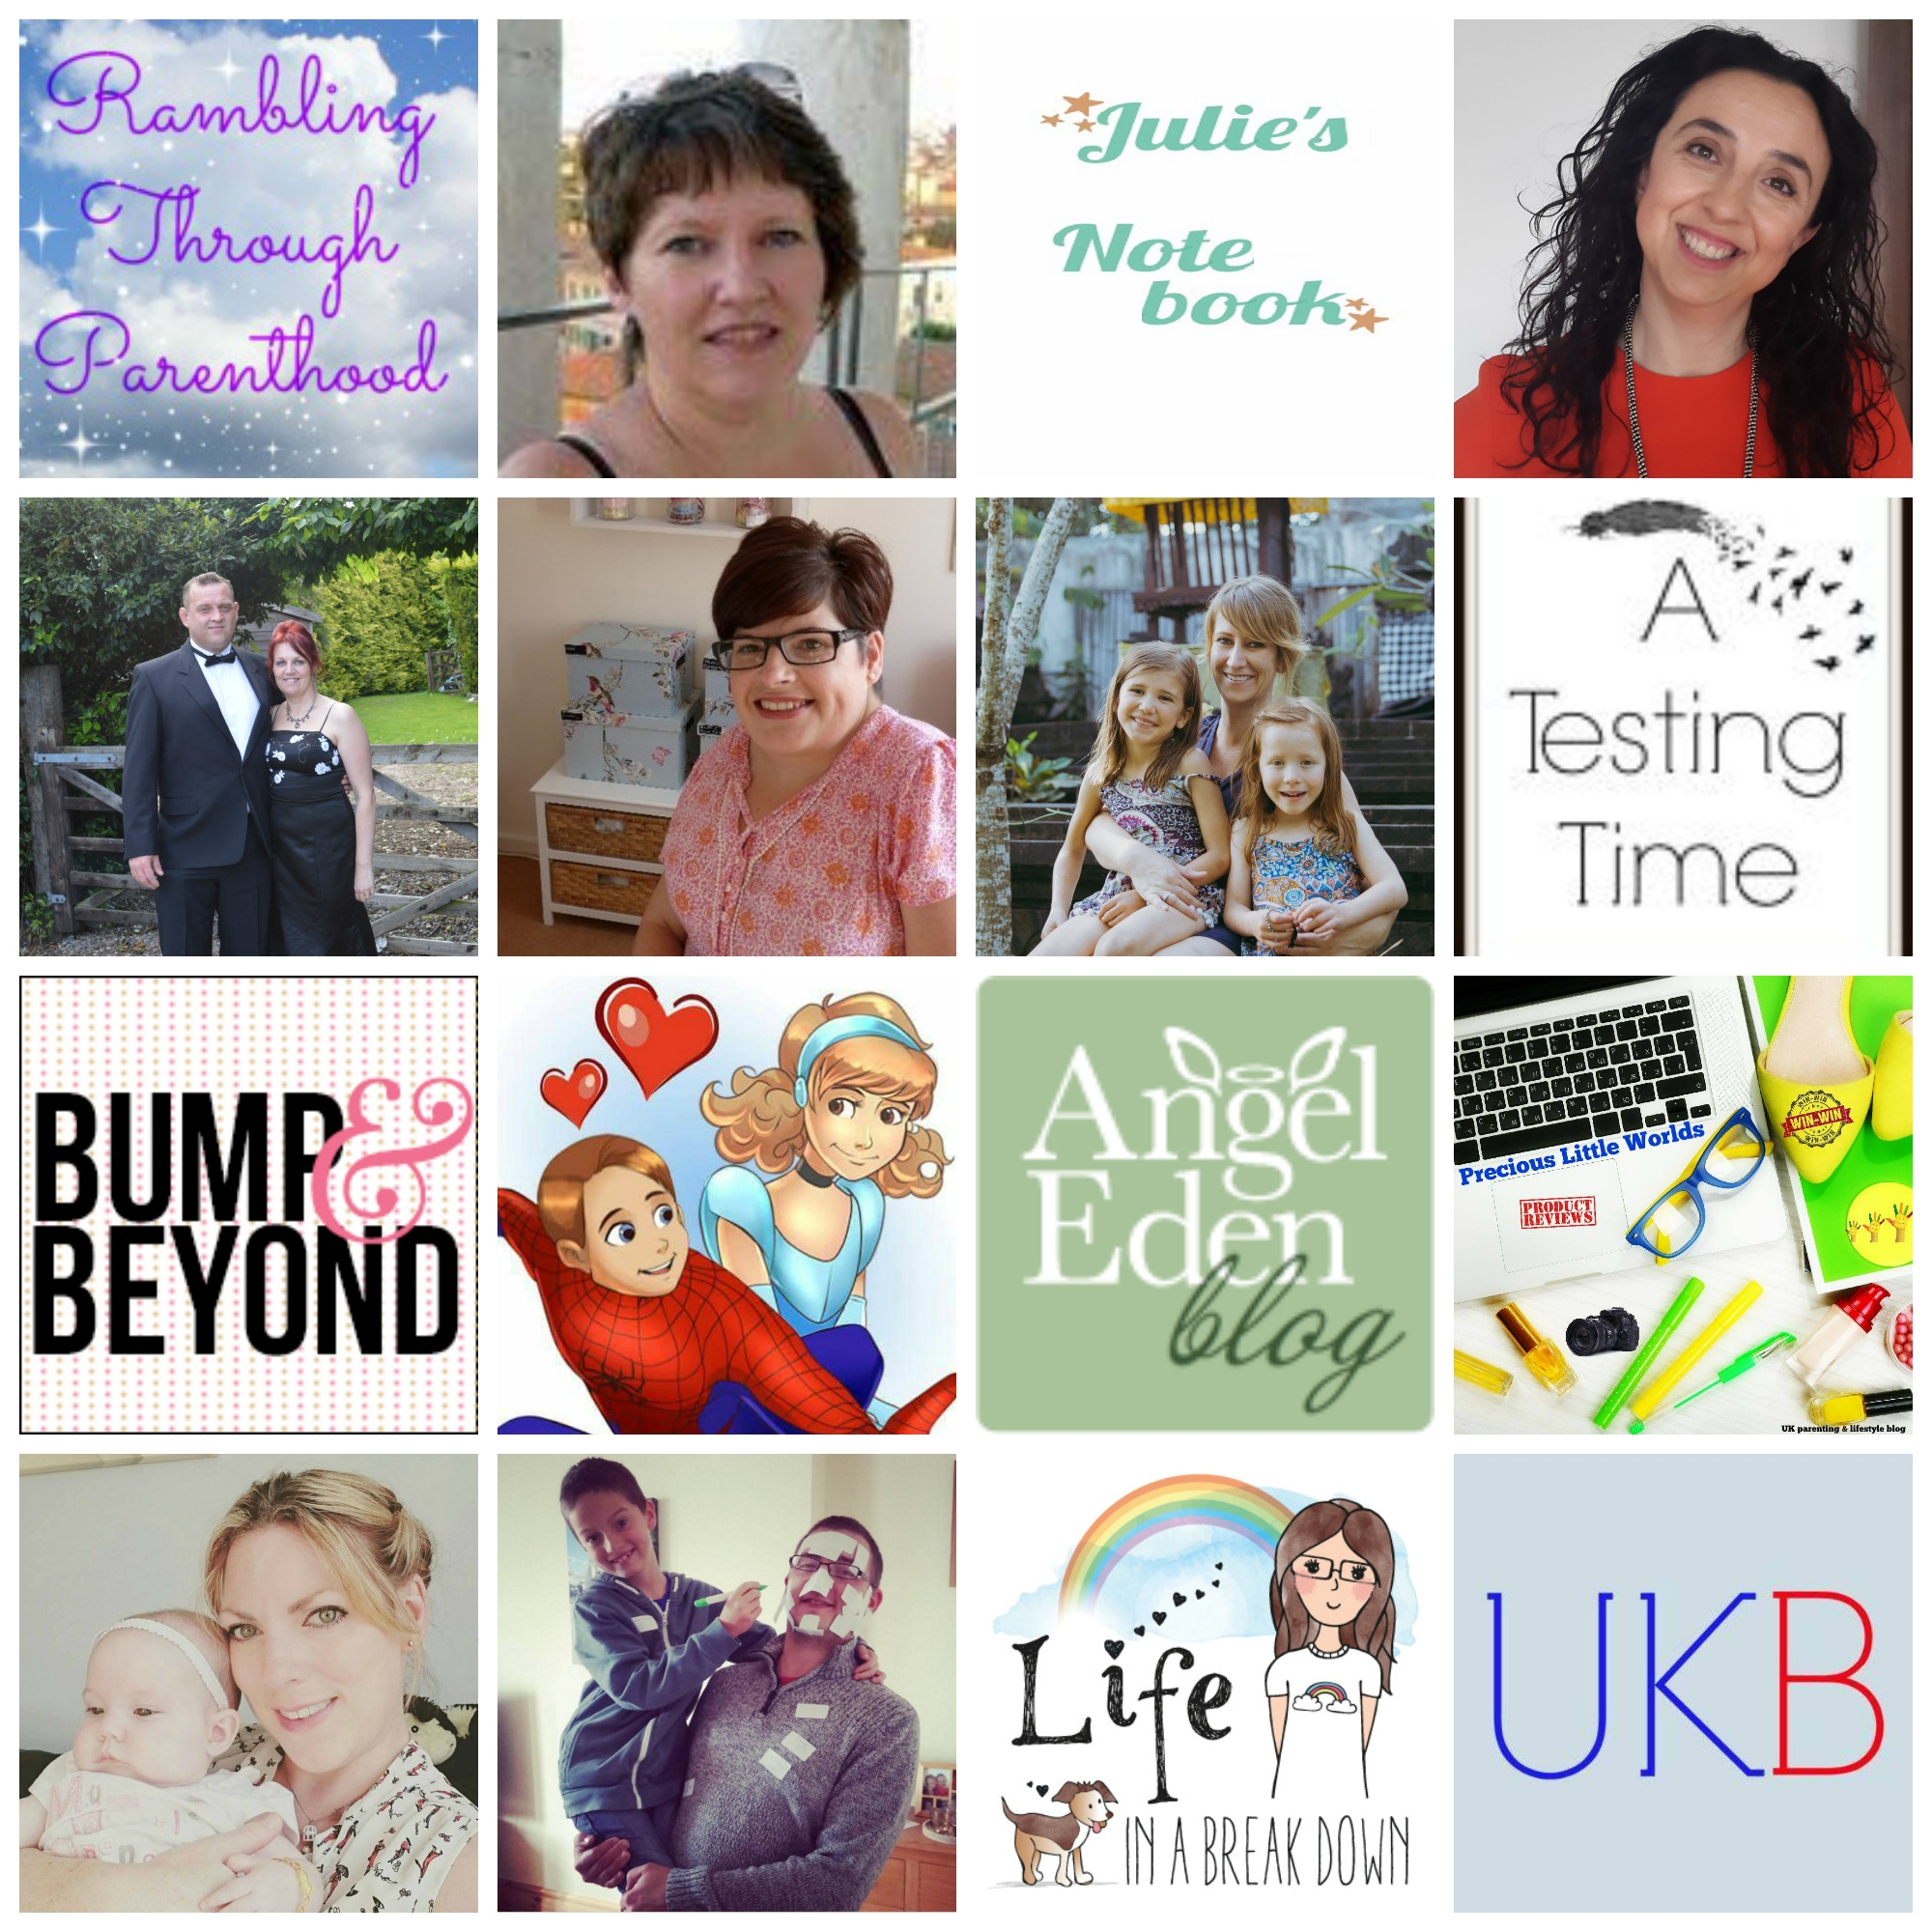 Rambling Through Parenthood  |   Life at 139a   |  Julie's Notebook  |  Spanish Mummy  |  Hex Mum  |  Garden, Tea , Cakes and Me  |  Mummy's Little Monkey  |  A Testing Time  |  Bump And Beyond  |  Emmy's Mummy  |  Angel Eden Blog  |  Precious Little Worlds  |  All The Beautiful Things  |  Hubby Helps  |  Life in a Break Down  |  UK Bloggers  |  One Frazzled Mum